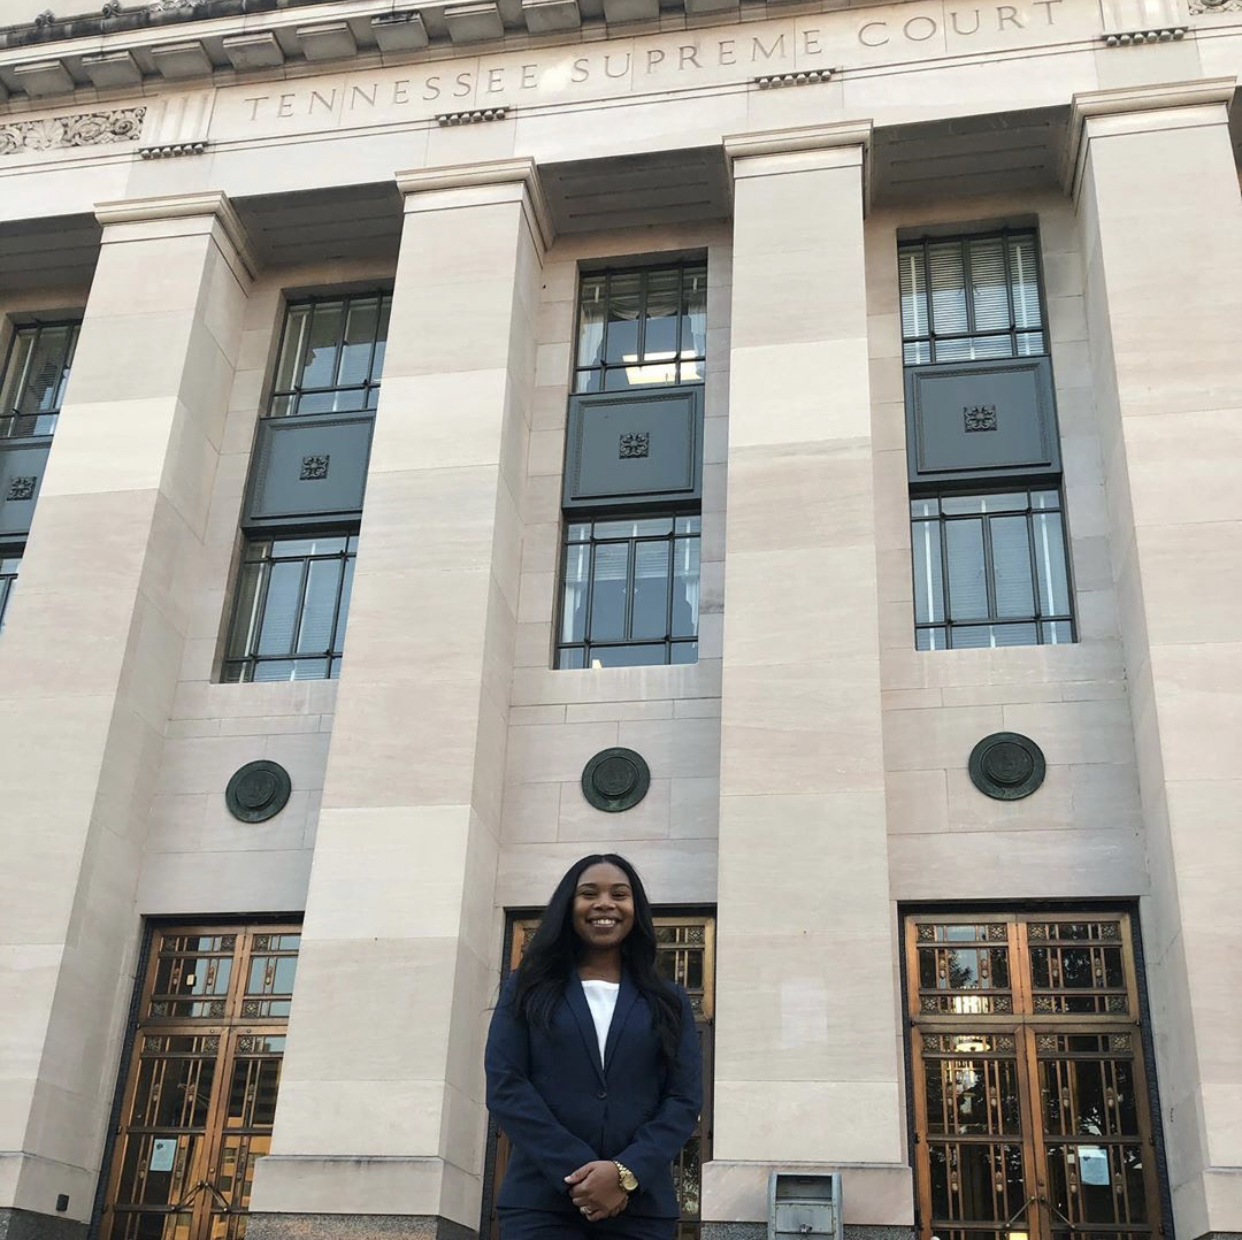 Juliana Lamar in front of Tennessee Supreme Court.